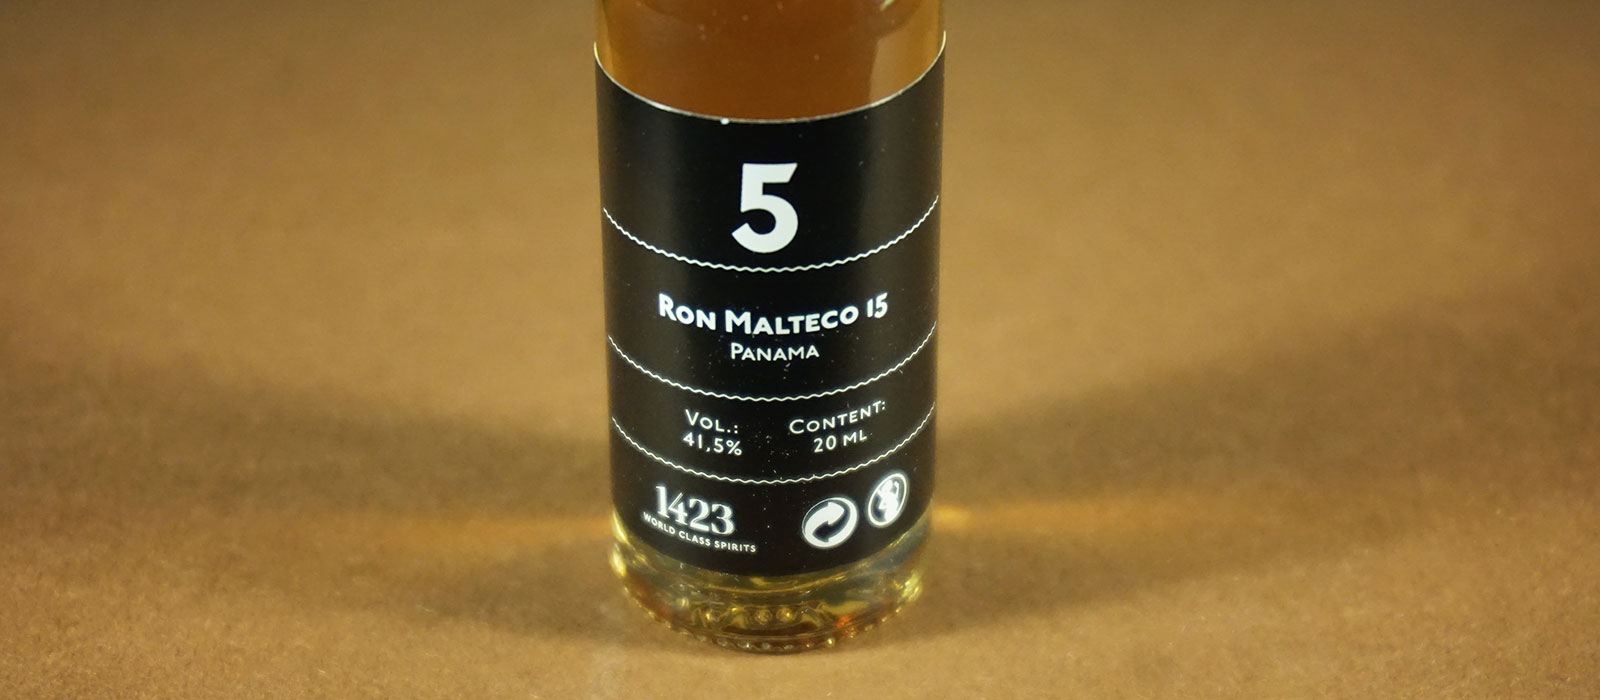 24 Days of Rum 2017: Dag 5 – Ron Malteco 15